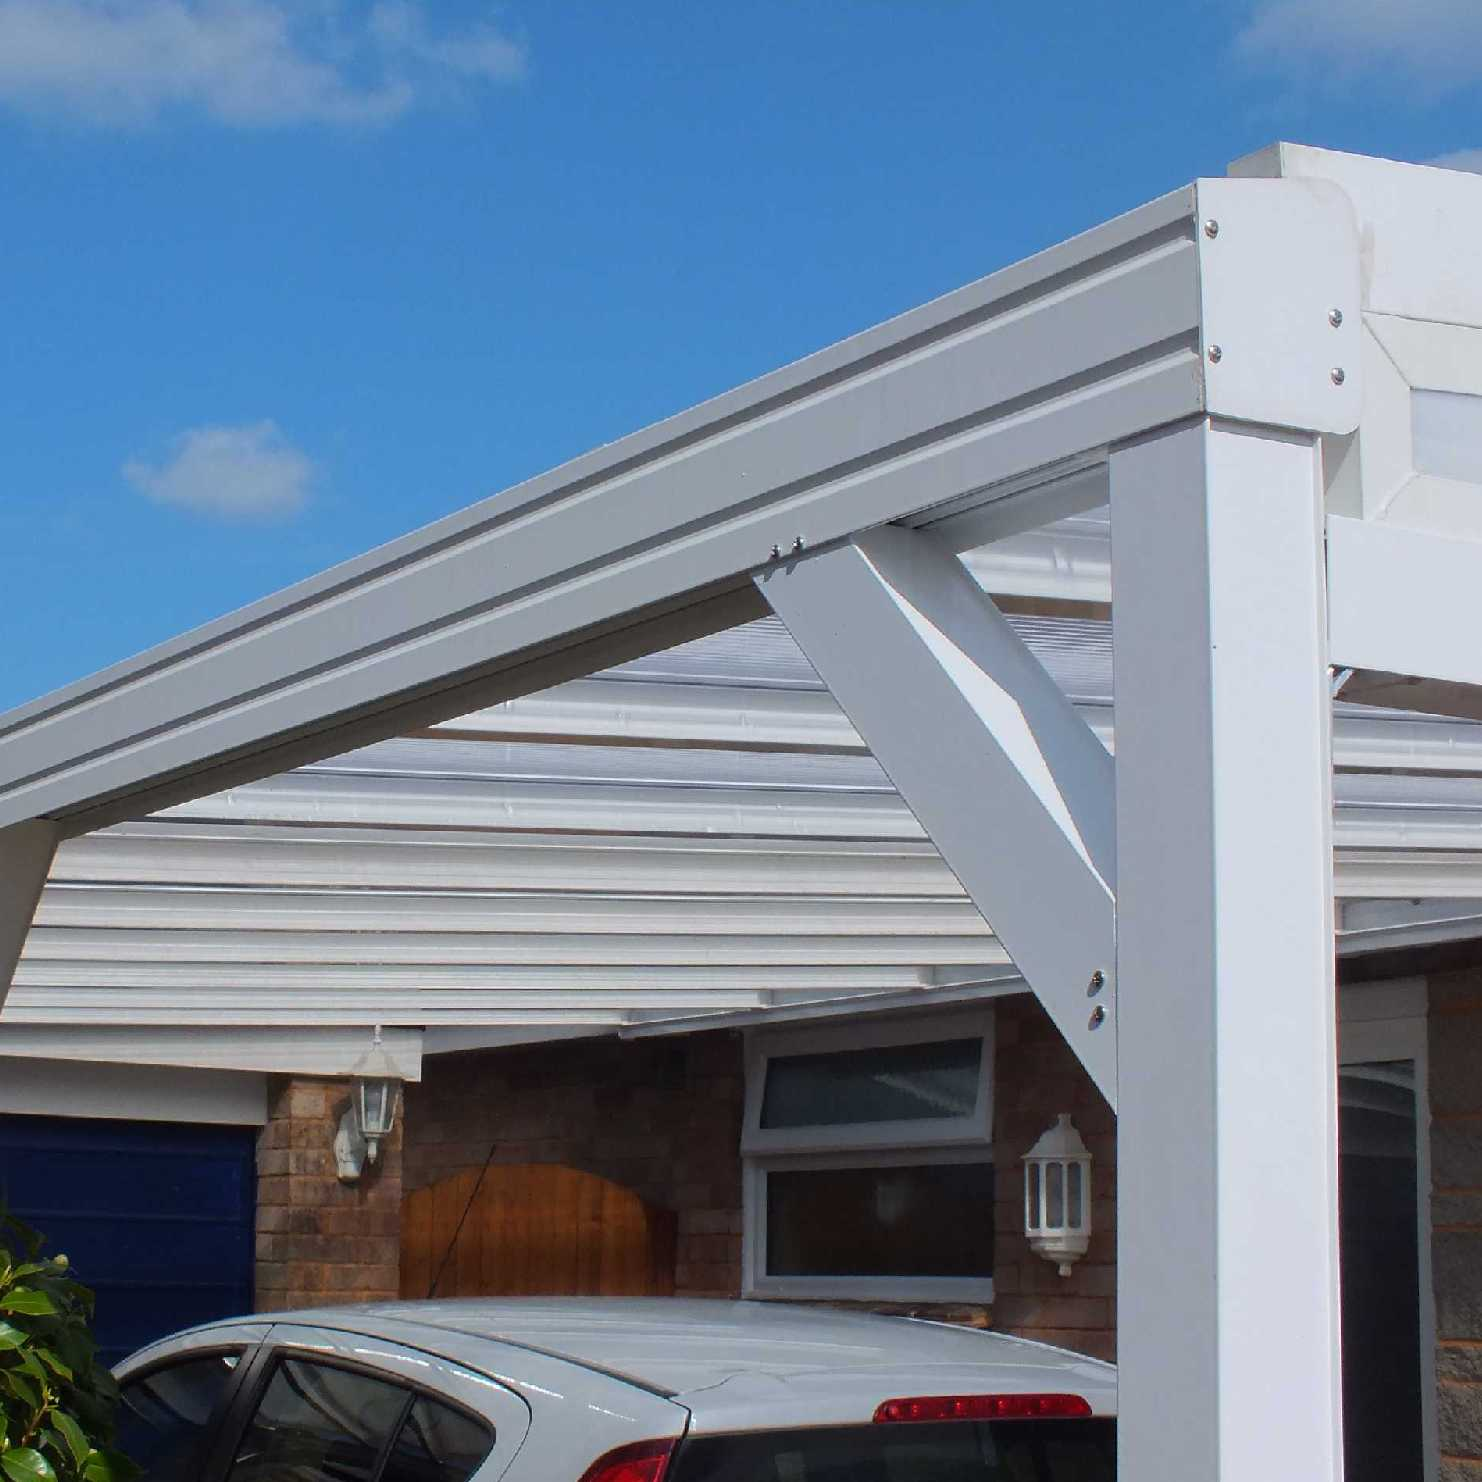 Buy Omega Smart White Lean-To Canopy with 16mm Polycarbonate Glazing - 3.5m (W) x 3.5m (P), (3) Supporting Posts online today